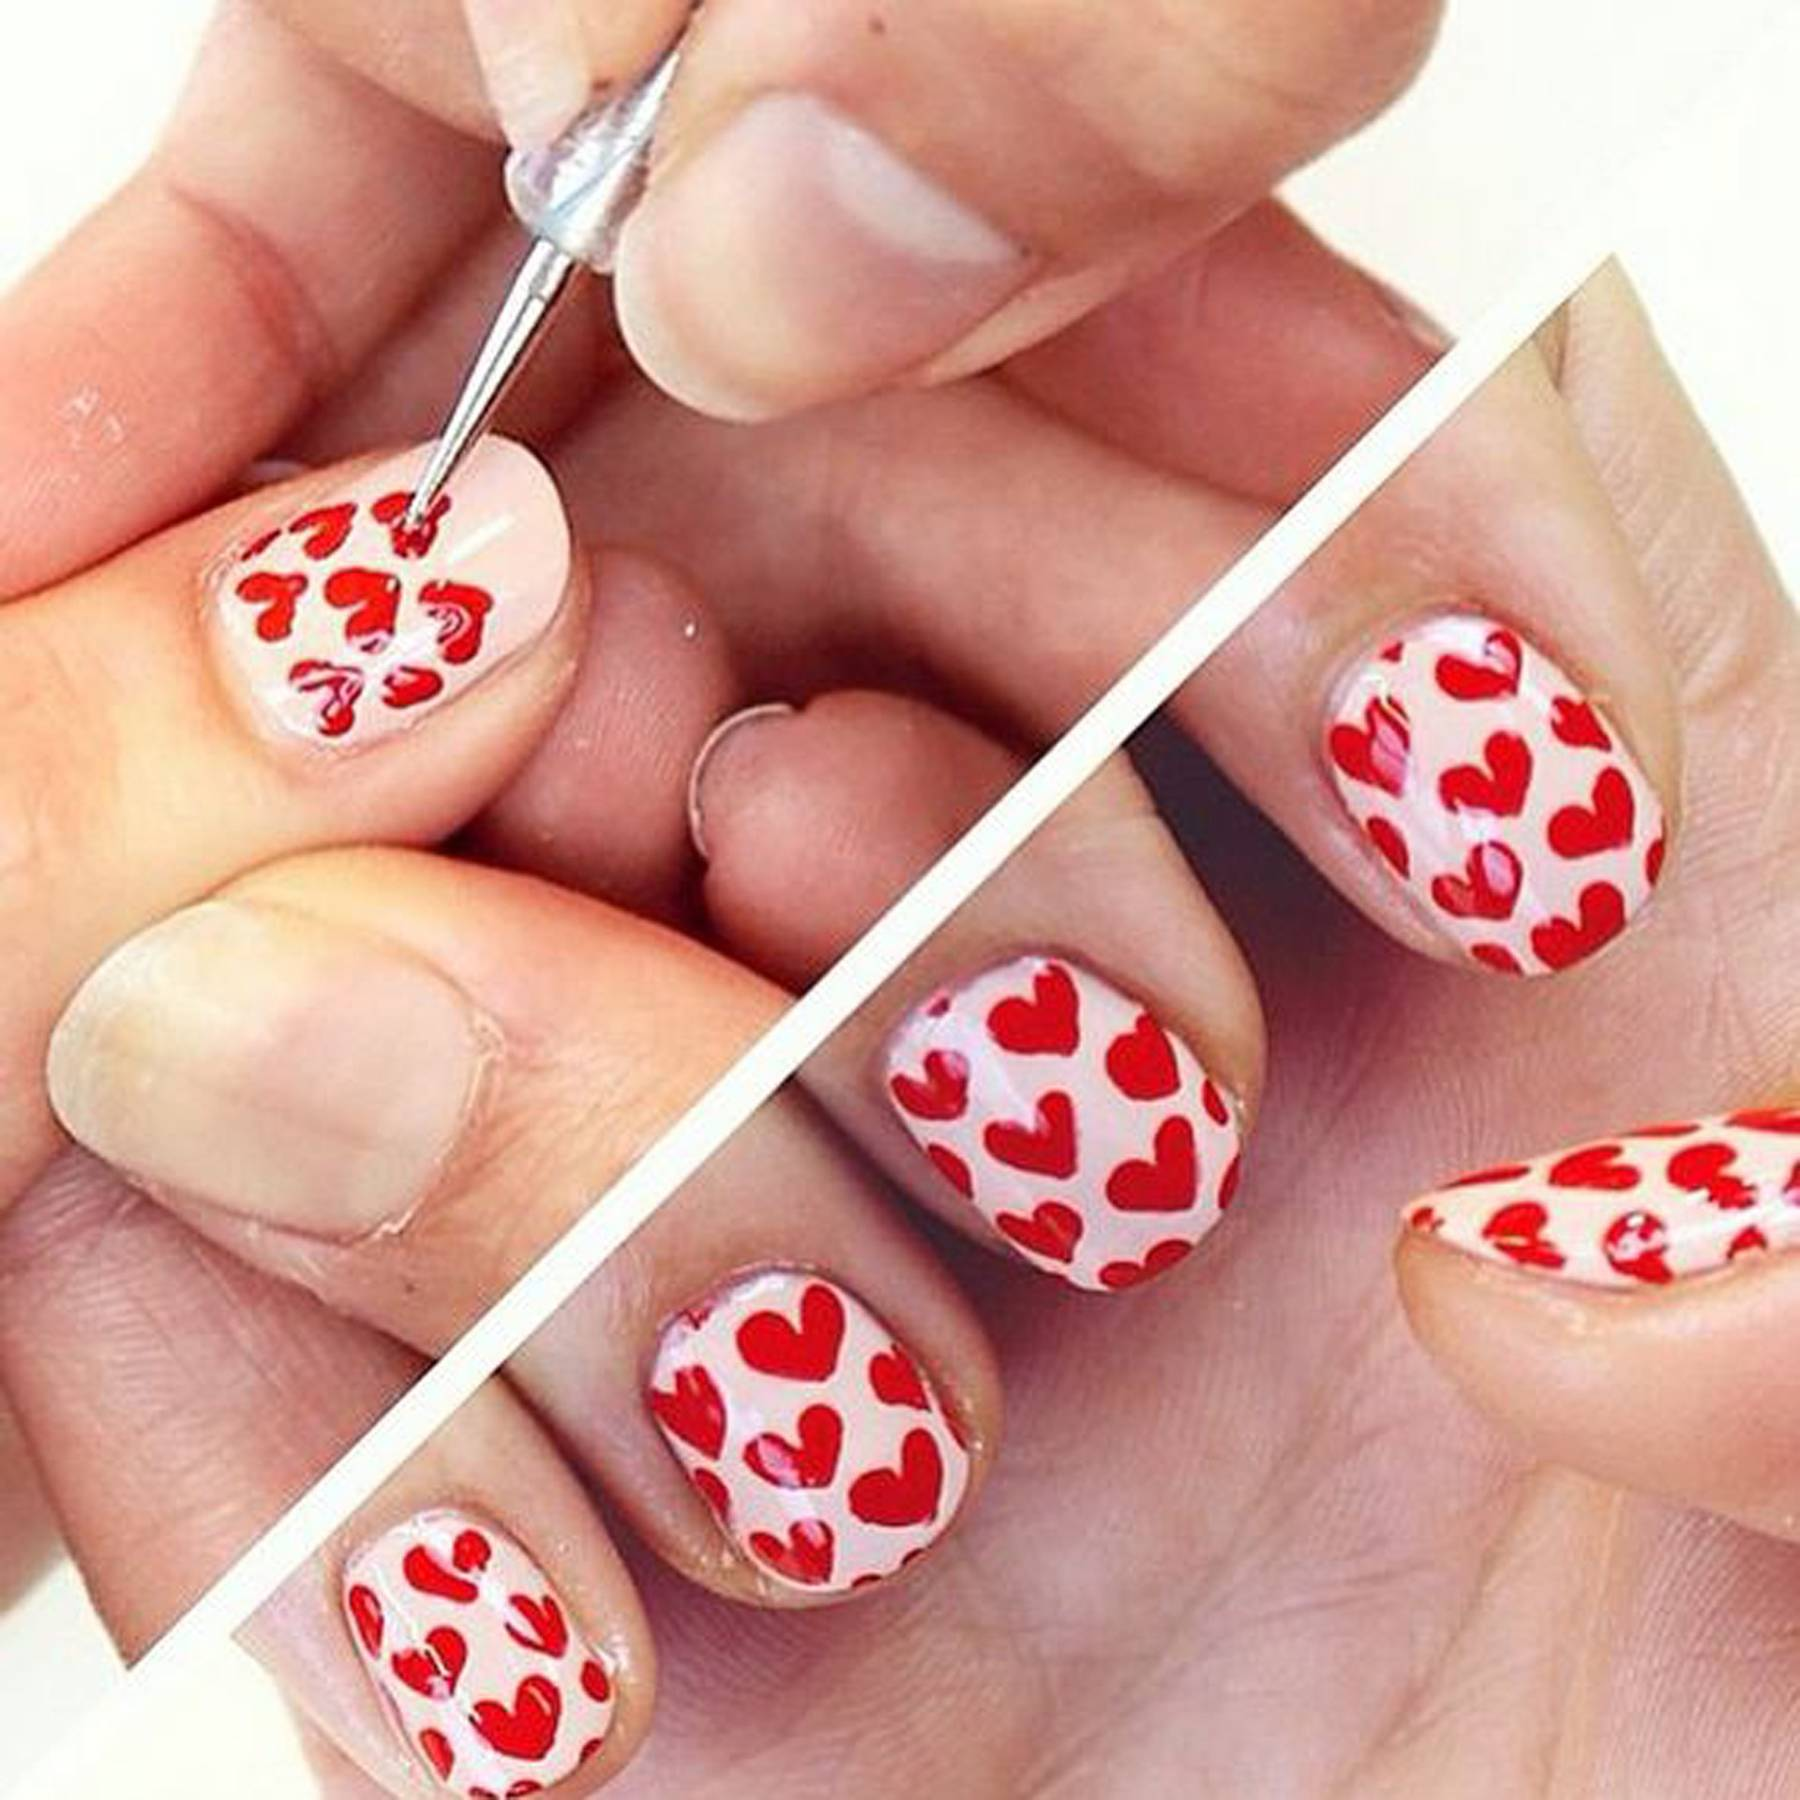 Wedding Nails: 23 Beautiful Nail Art Ideas For Your Big Day | Glamour UK